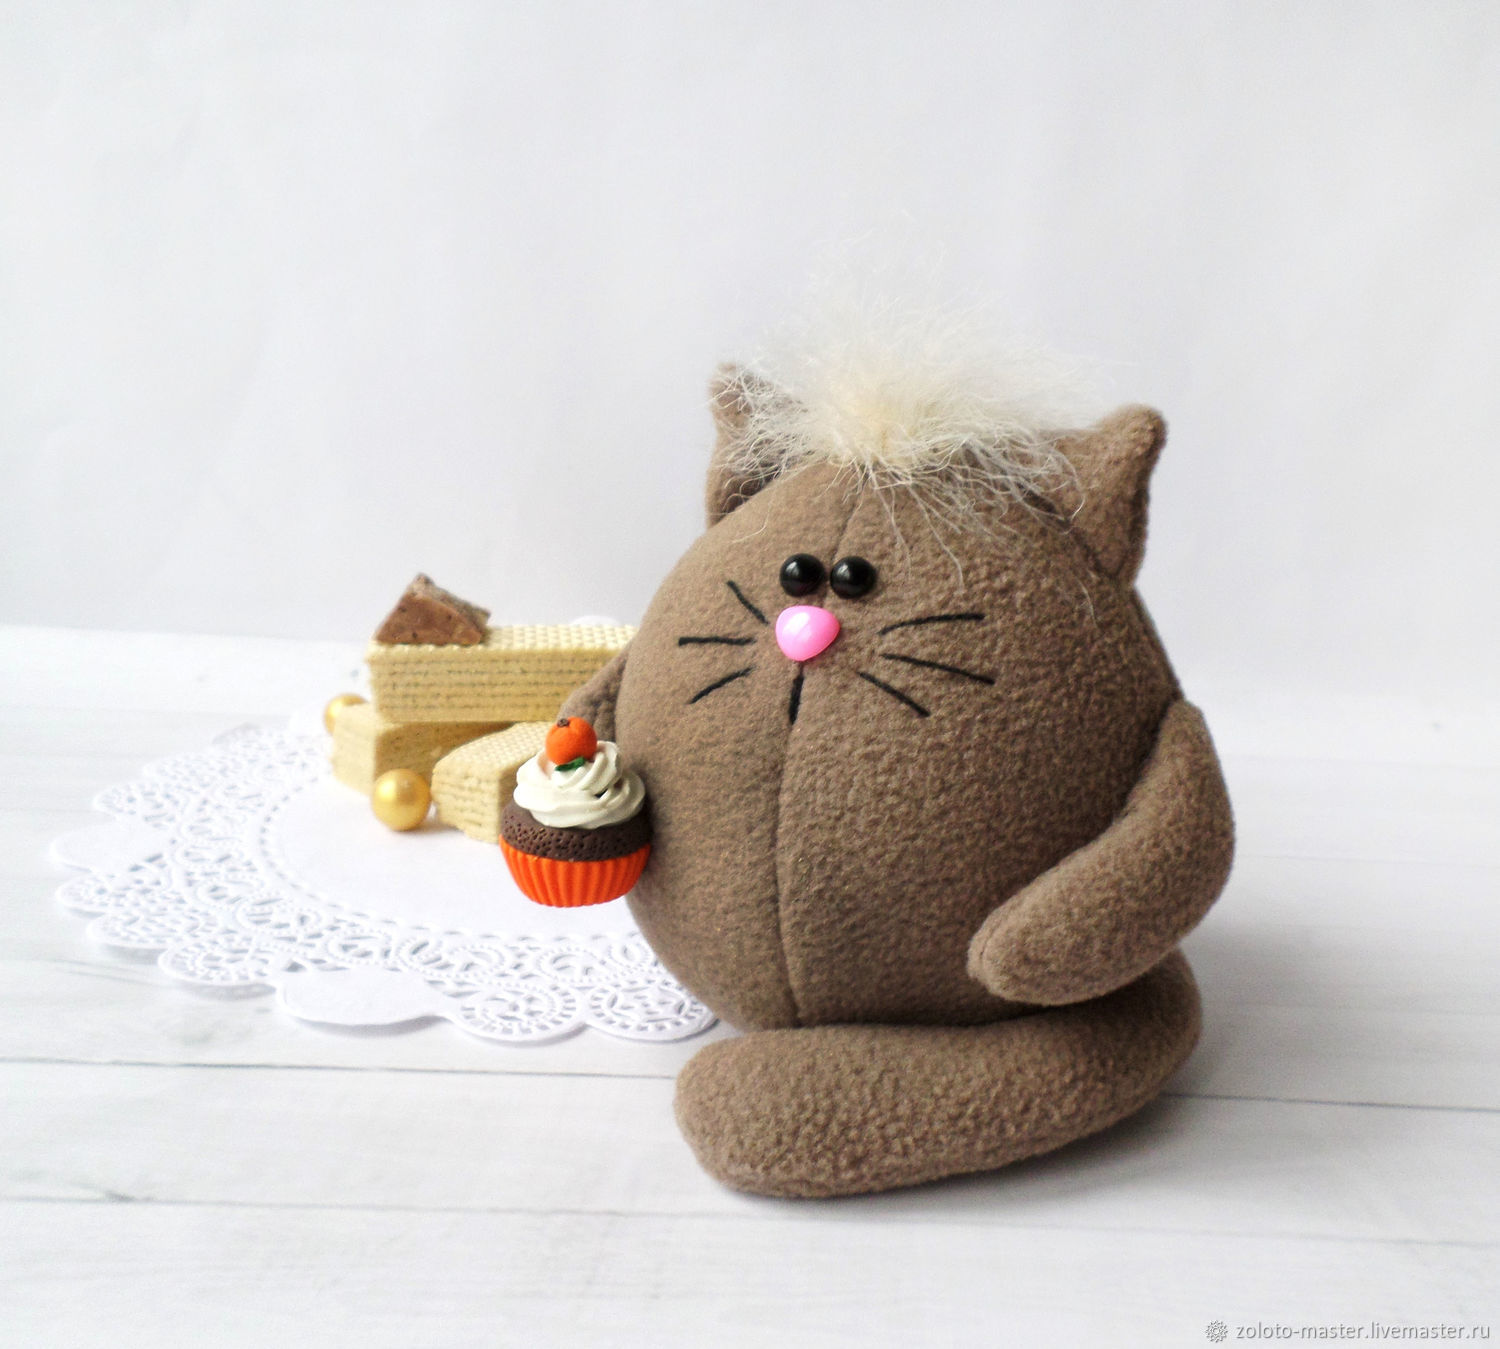 Soft Kitty Muffin Shop Online On Livemaster With Shipping